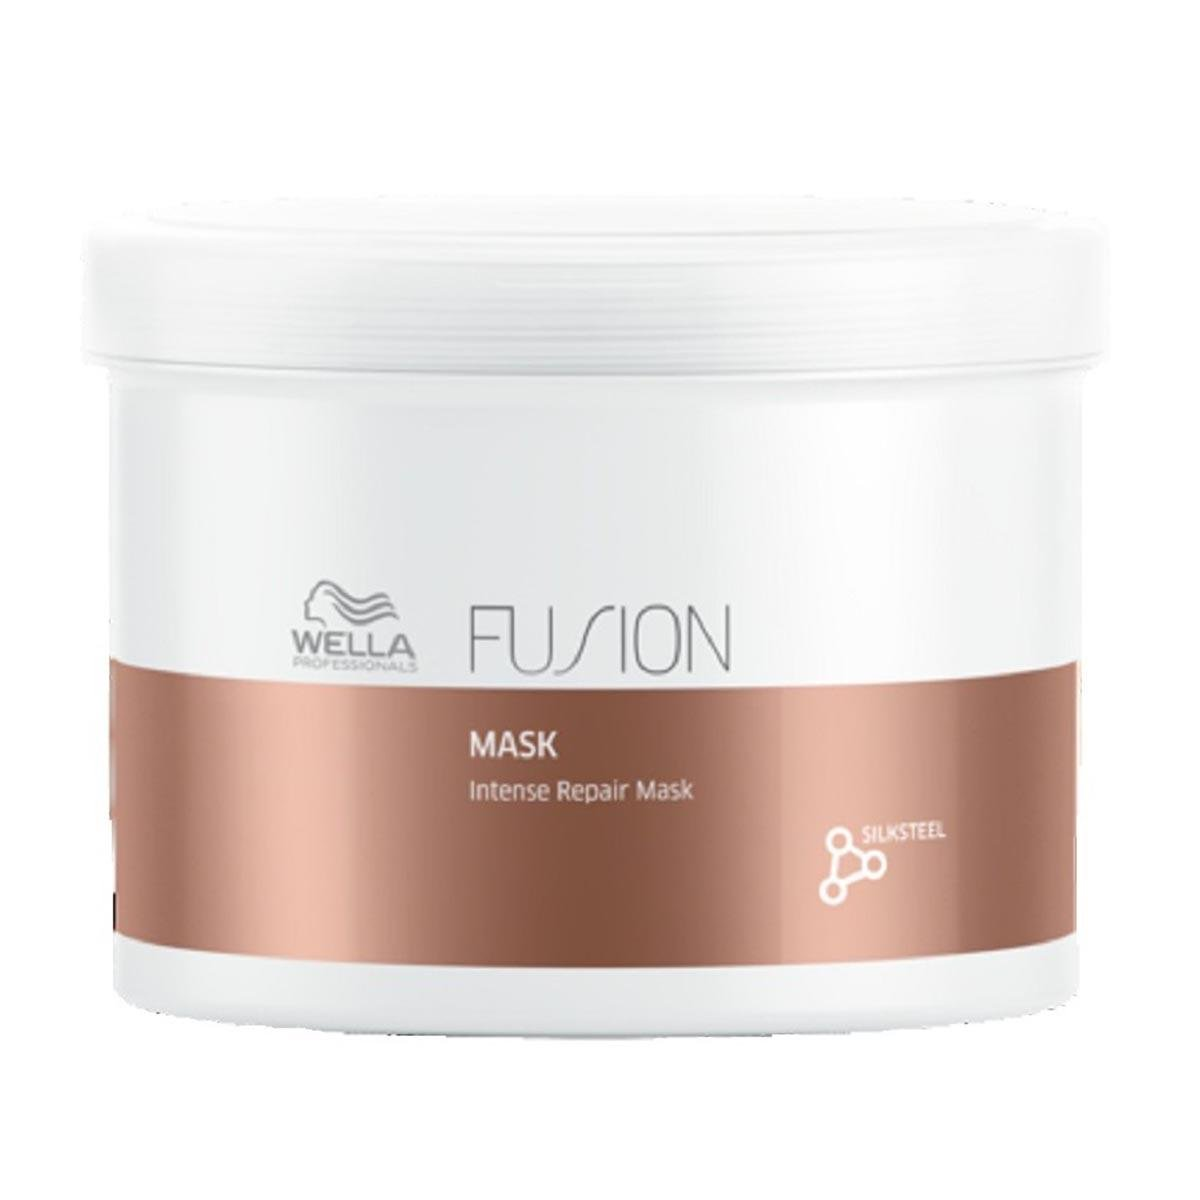 Wella Professionals Care Fusion Mask Fusion Intense Repair